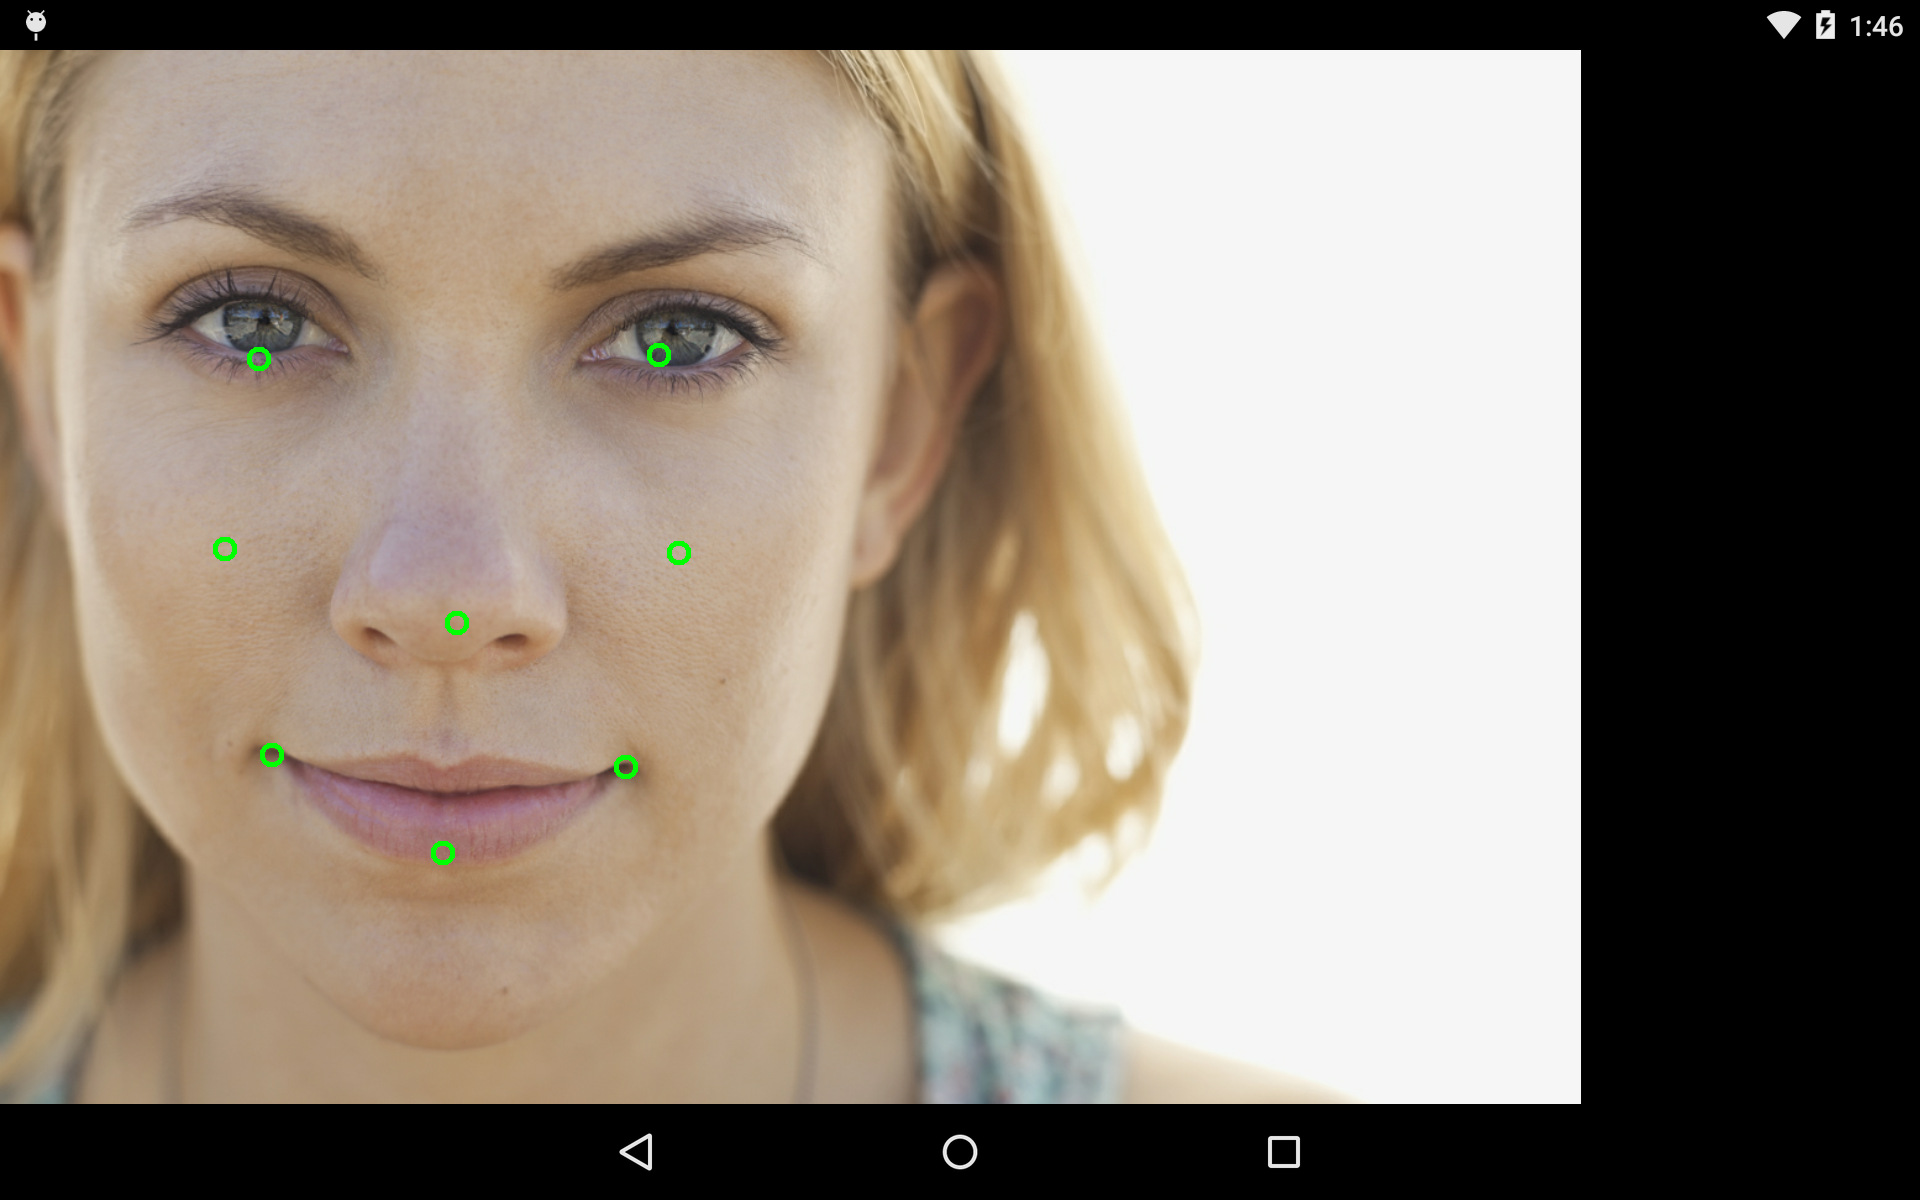 Android Eye Tracking Api - Mobile Vision